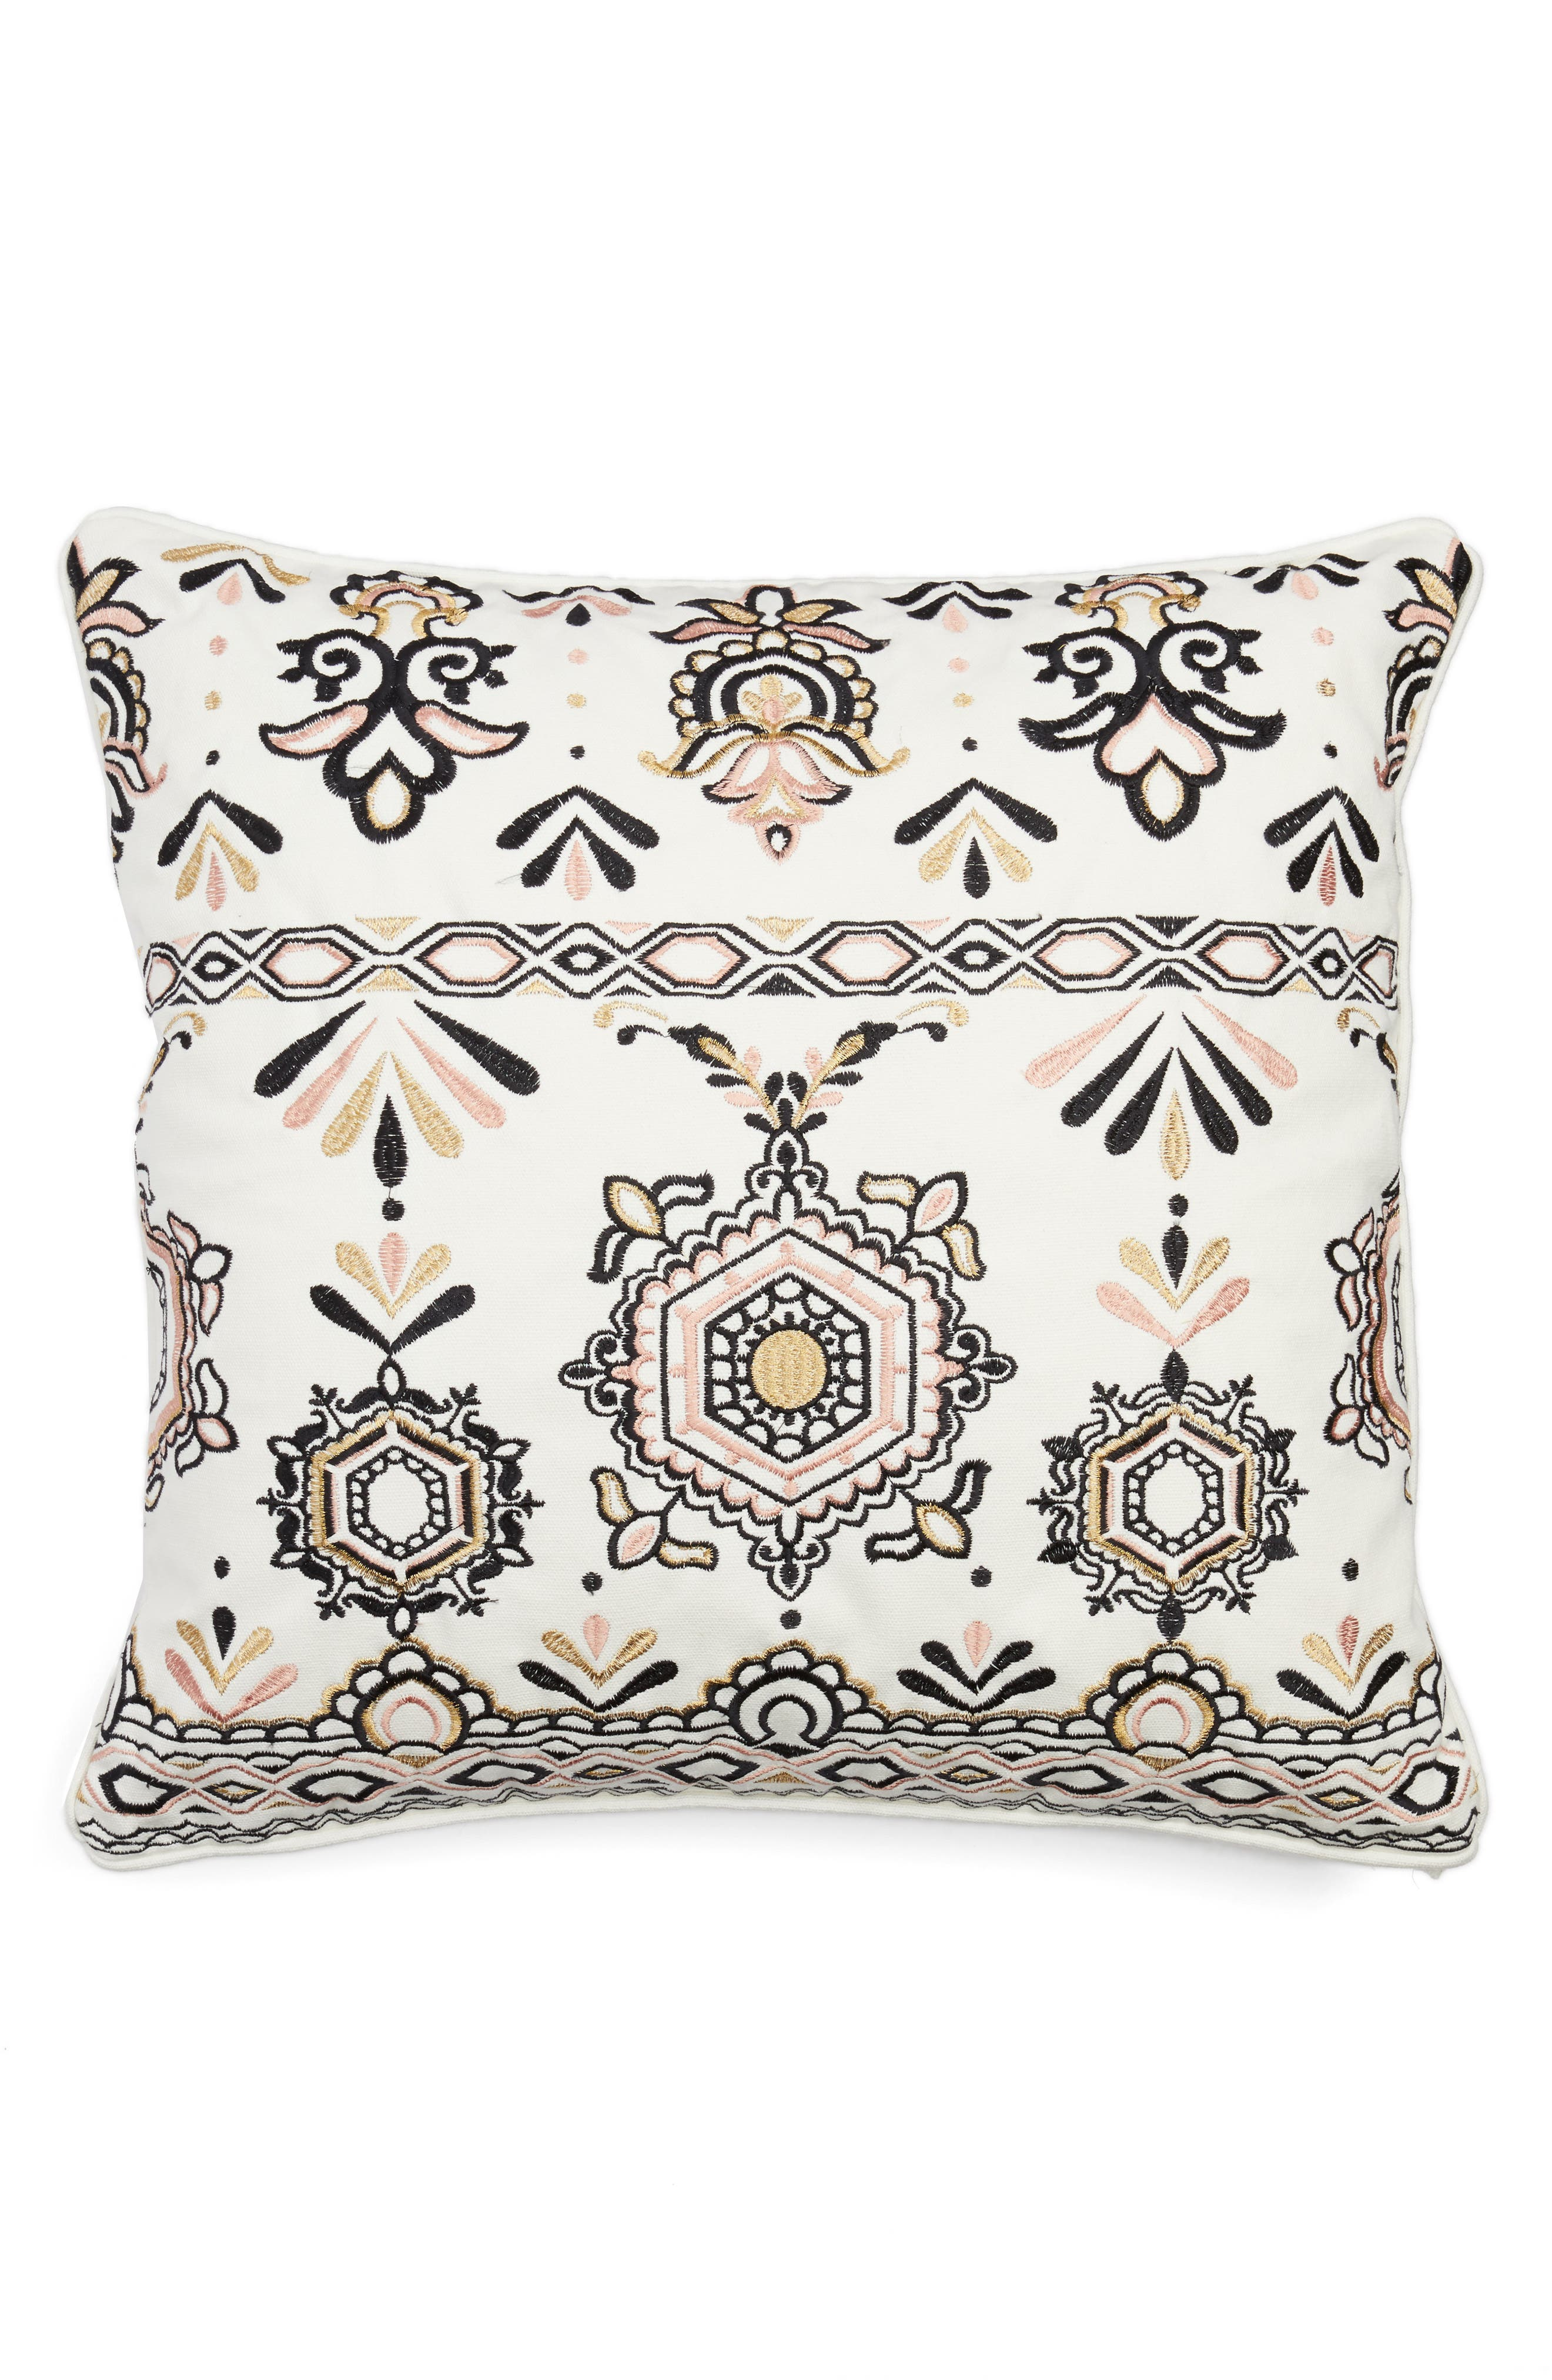 Embroidered Medallion Pillow,                             Main thumbnail 1, color,